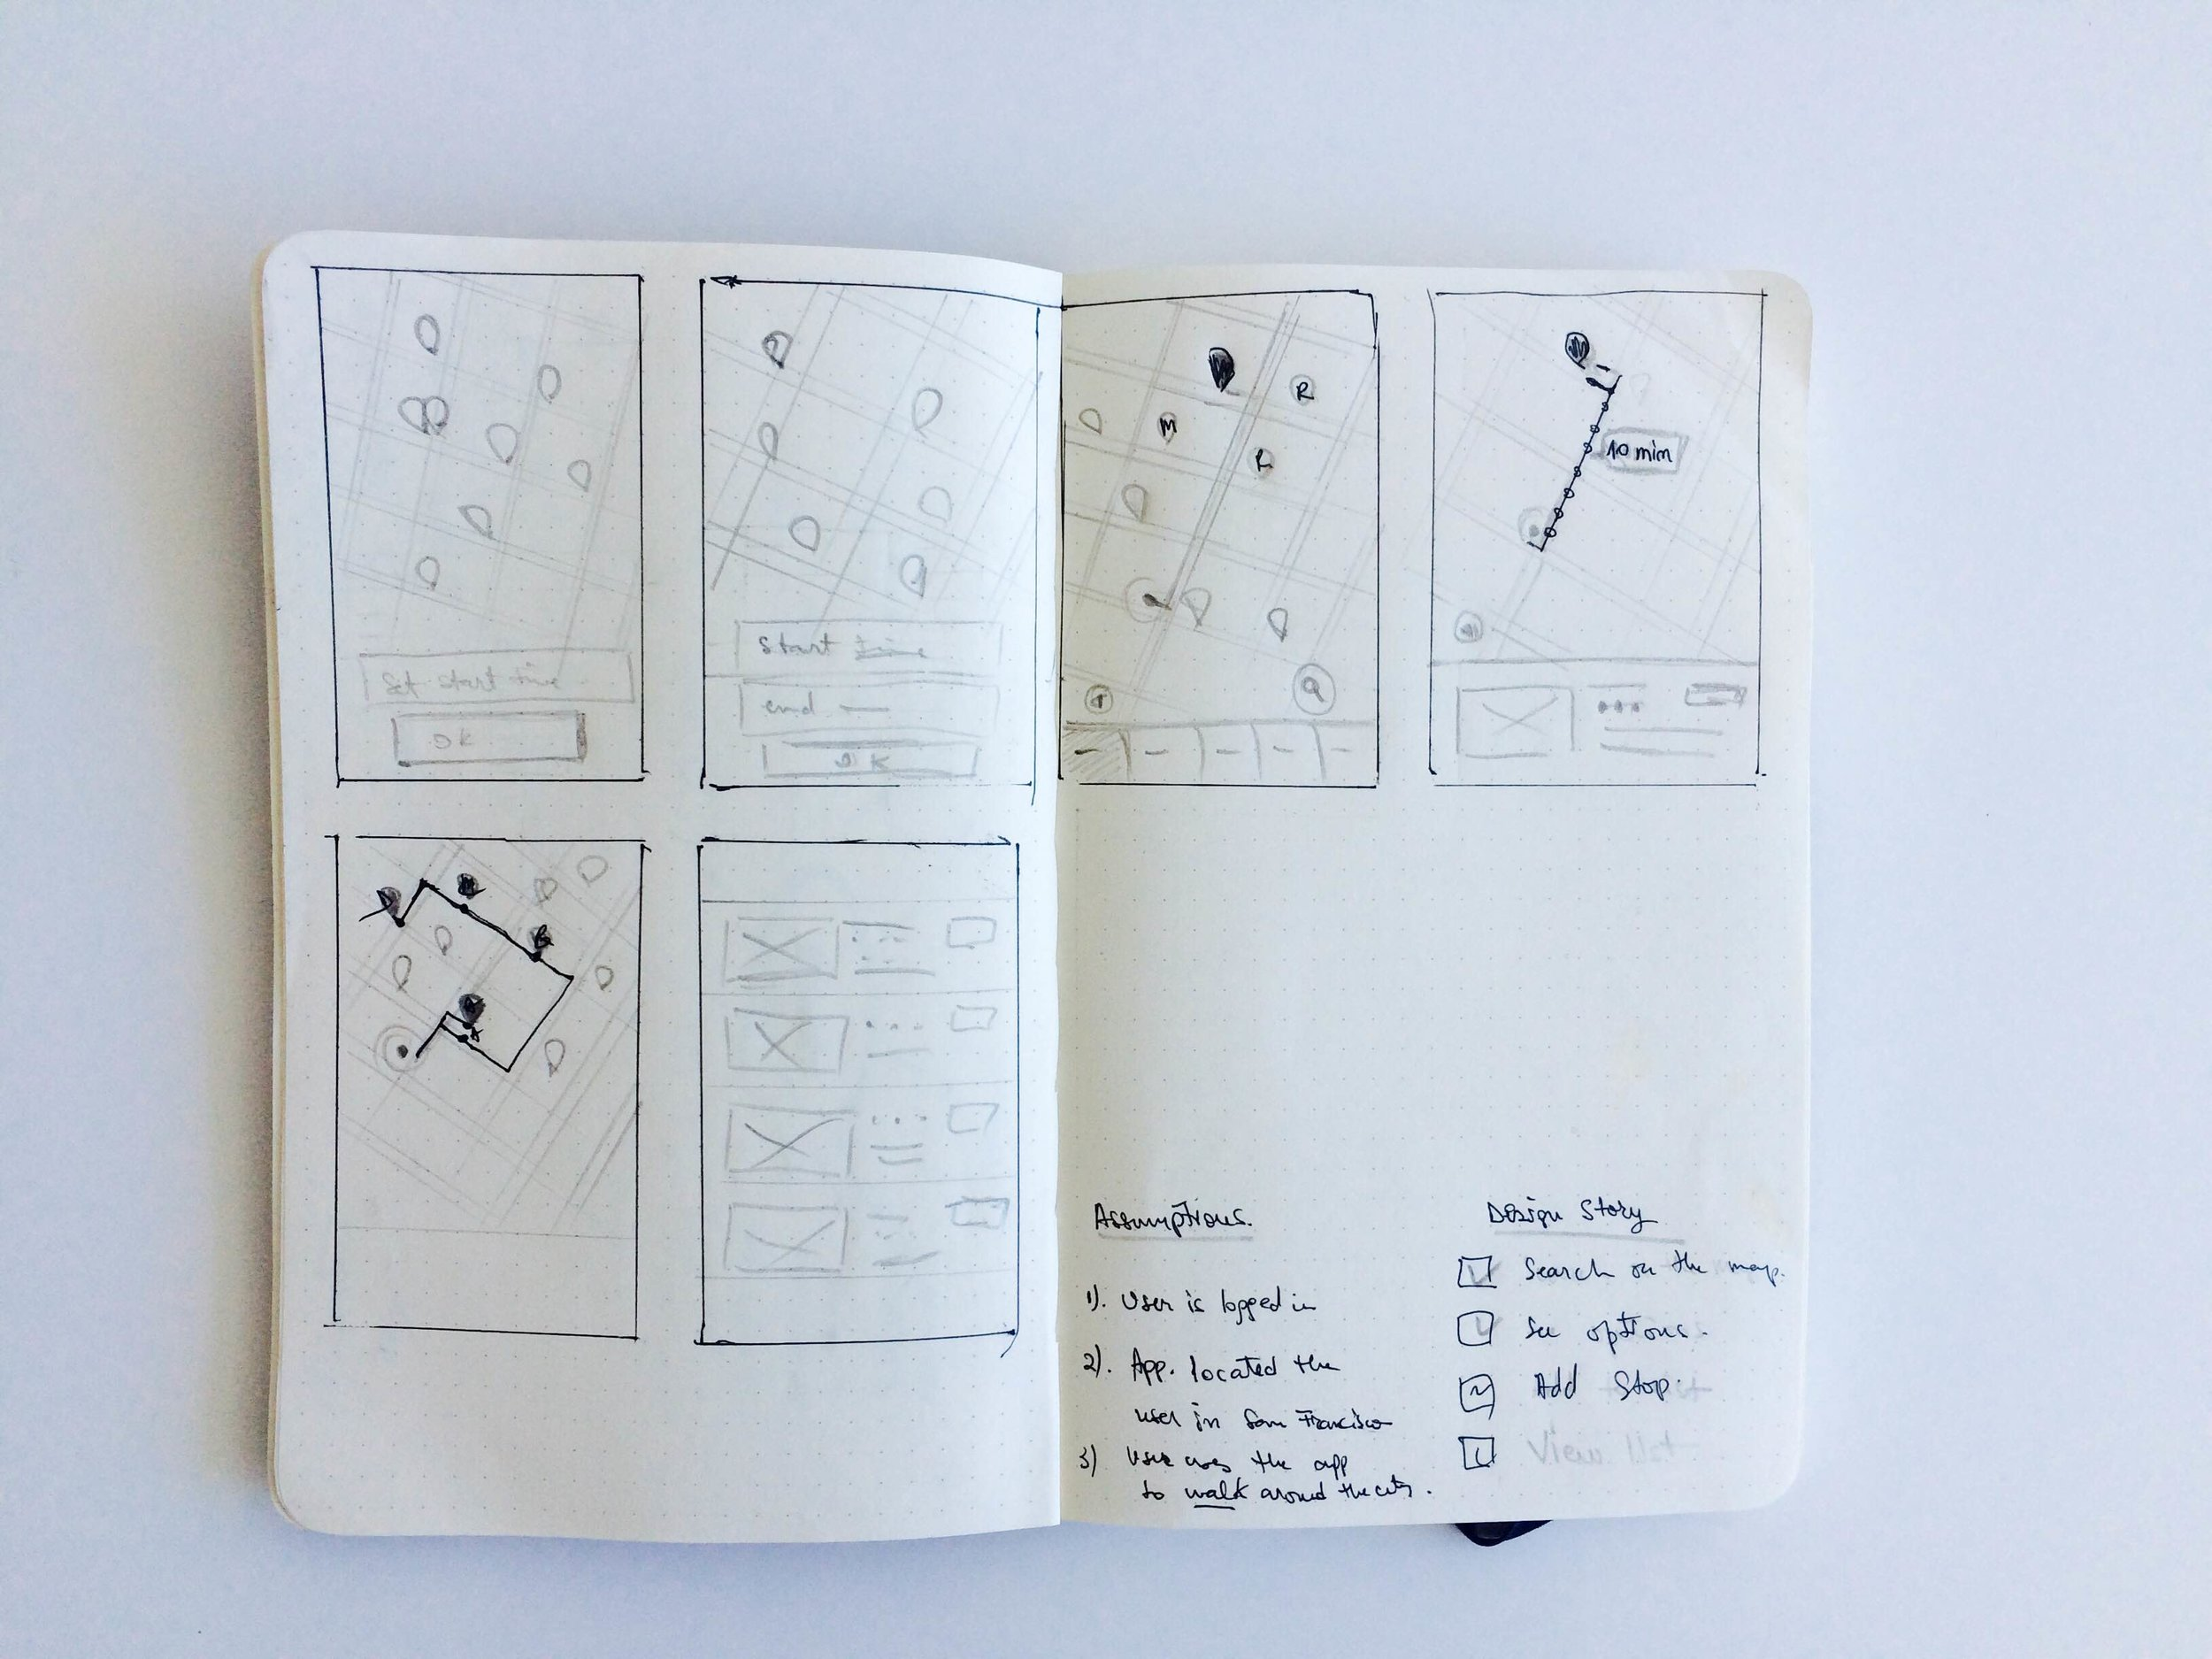 Early sketches exploring different navigation patterns for the app.